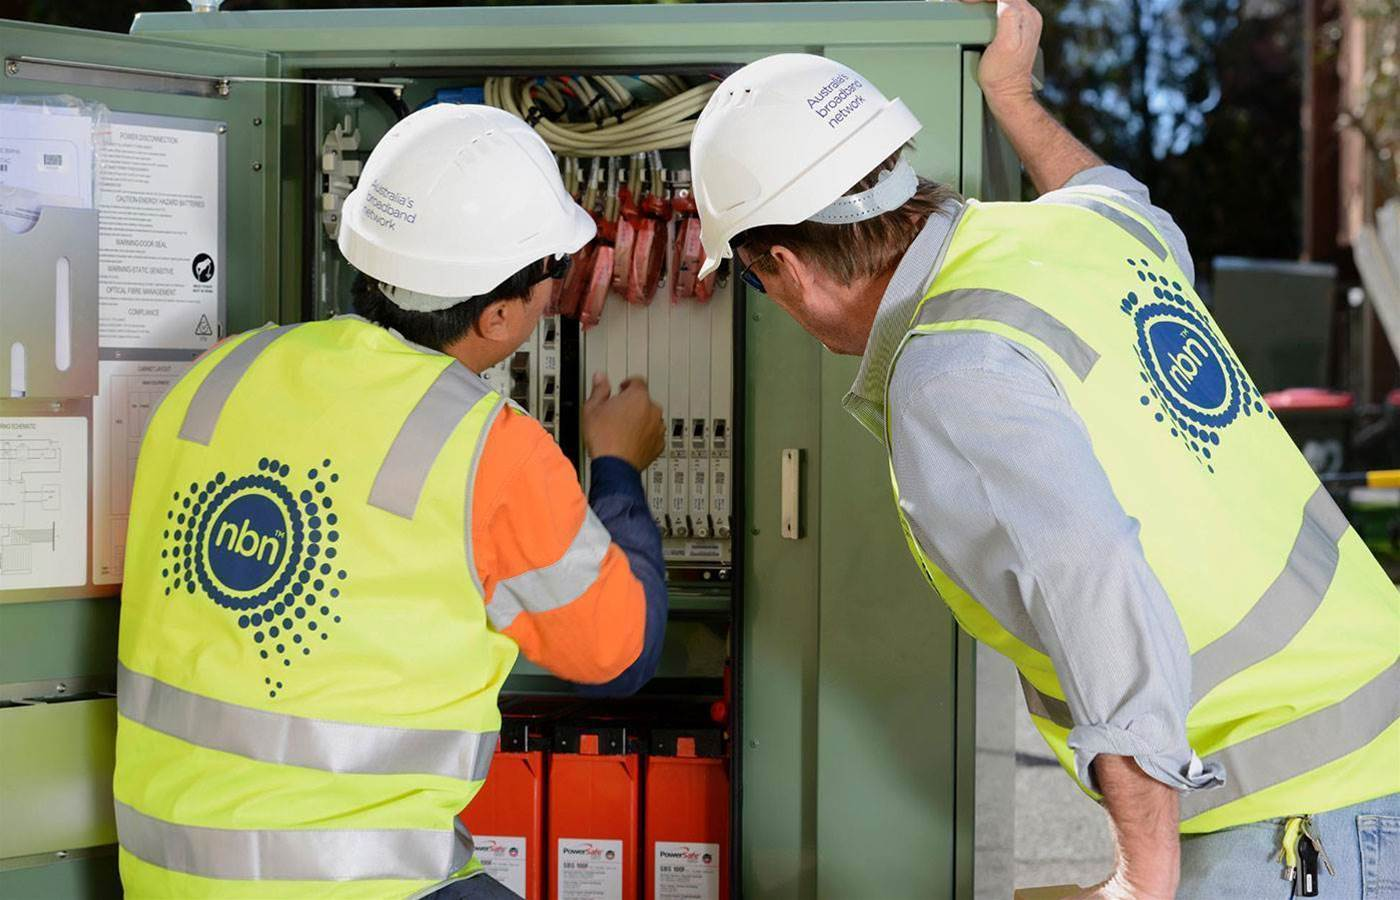 Optus, Vocus disappointed but not surprised at NBN's HFC woes